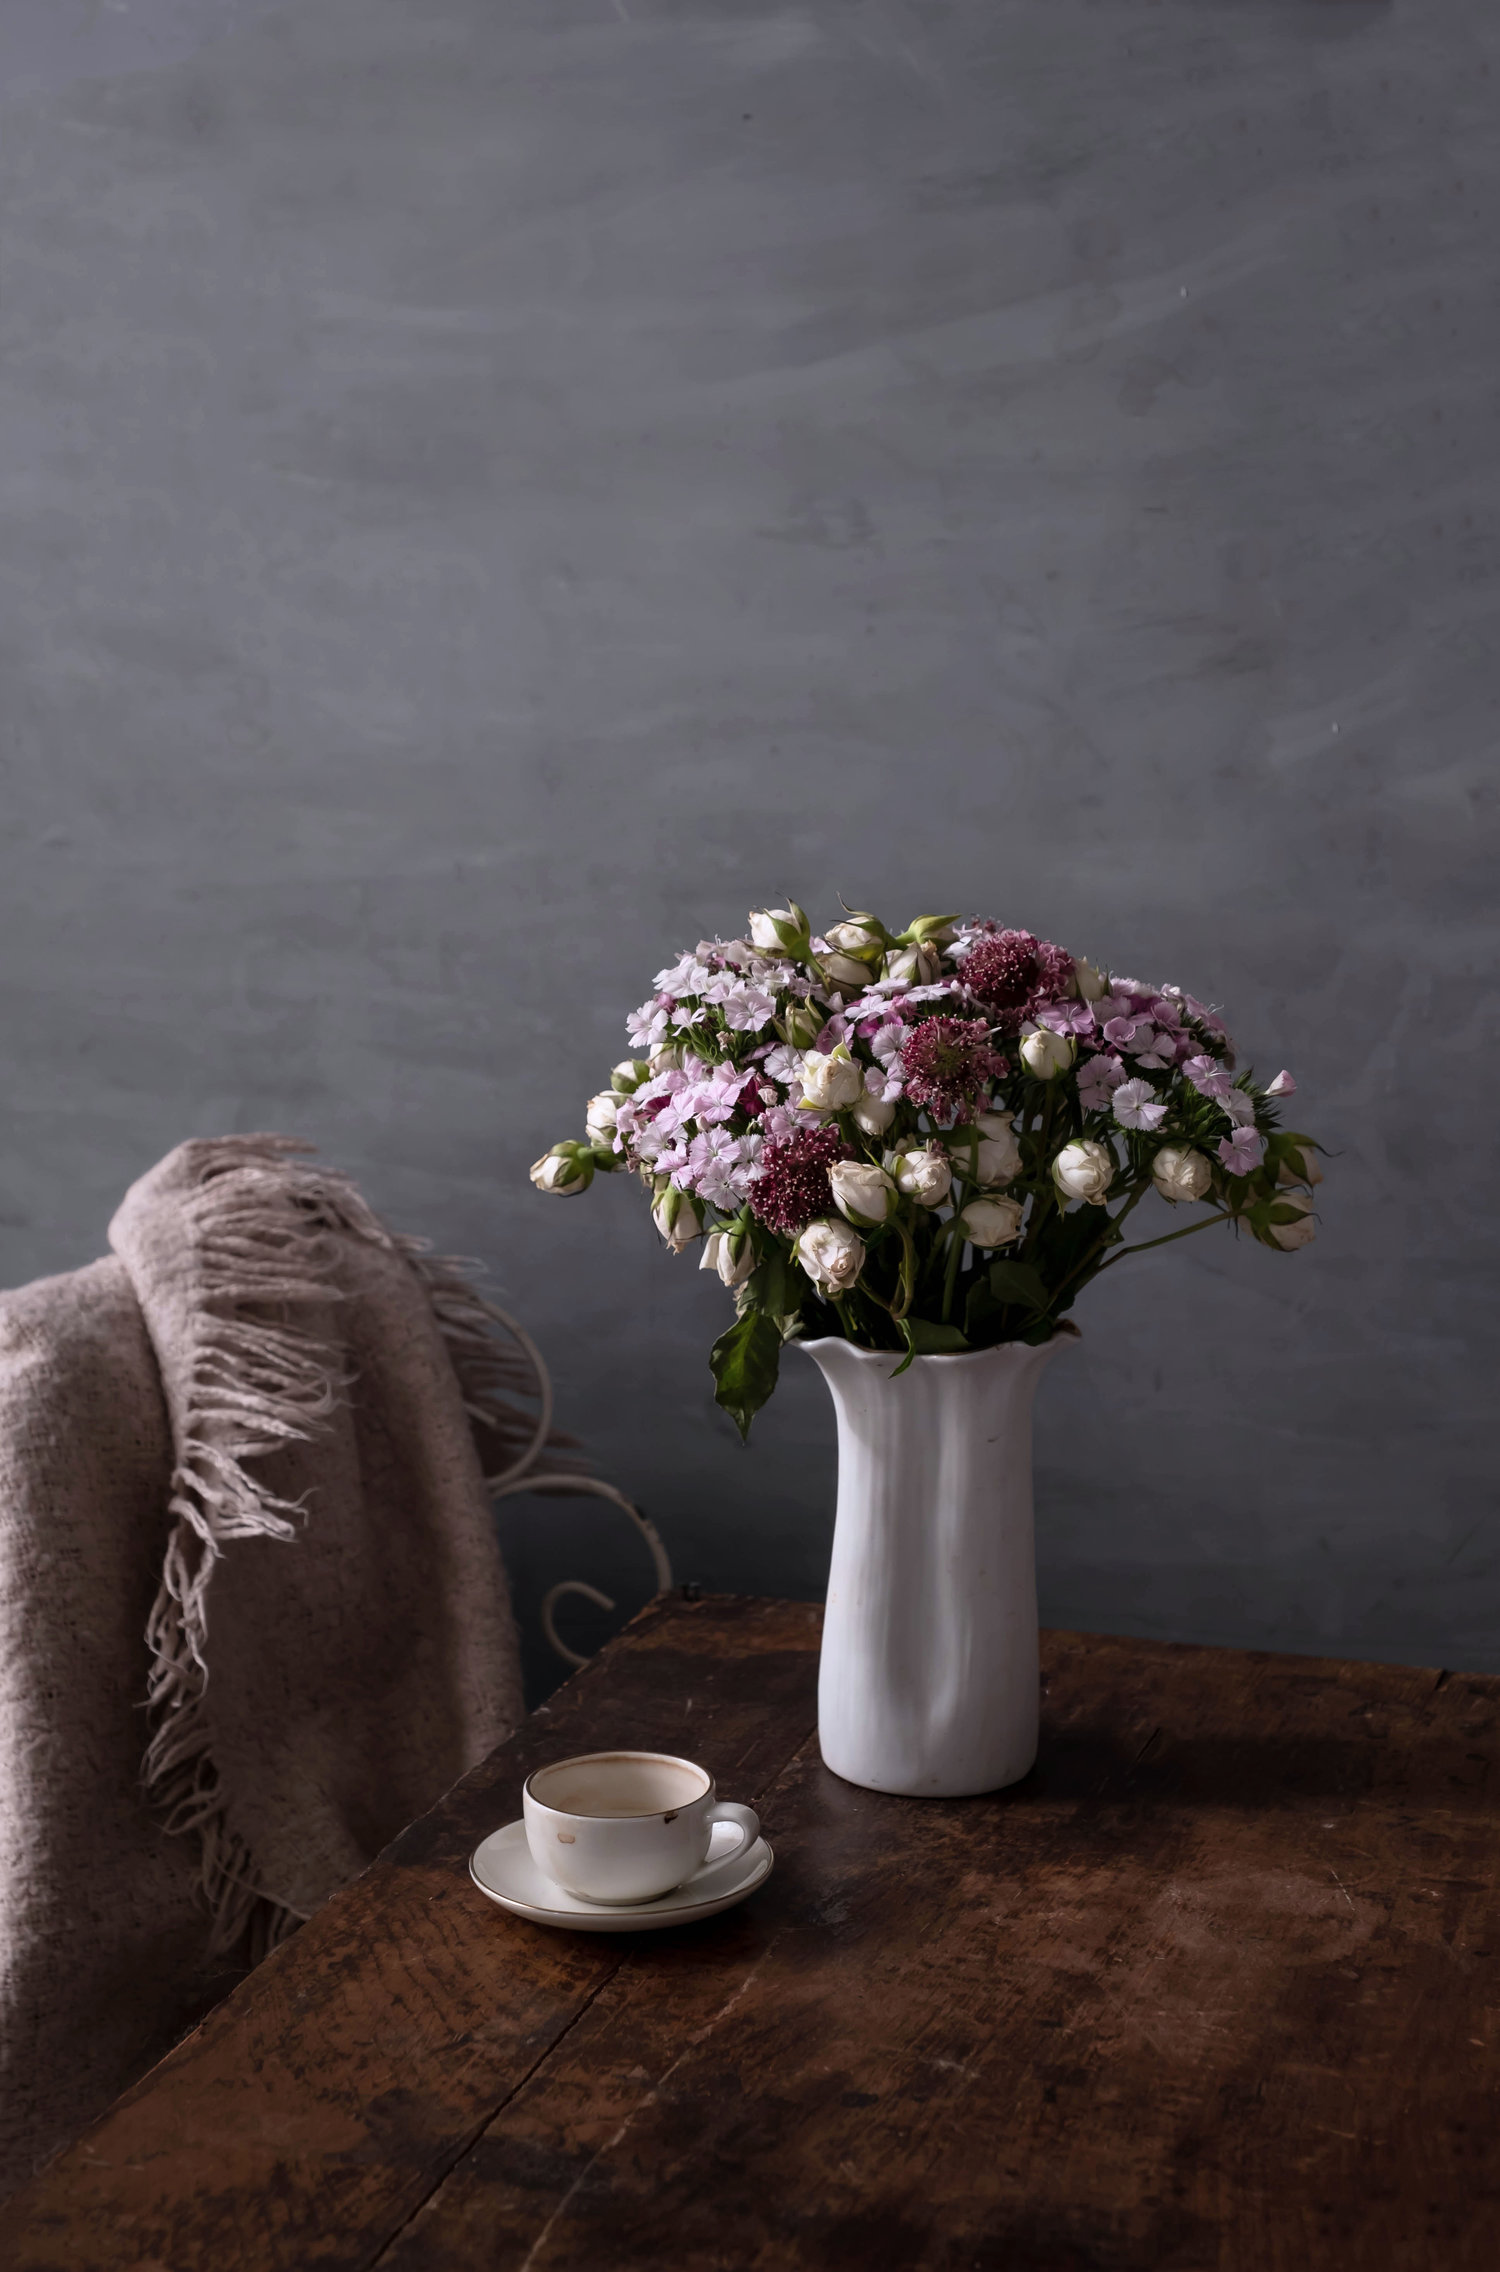 ROSE+&IVY+Journal+Holiday+Gifting+A+Guide+of+Flowers+&+Botanicals+Urban+Stems.jpeg